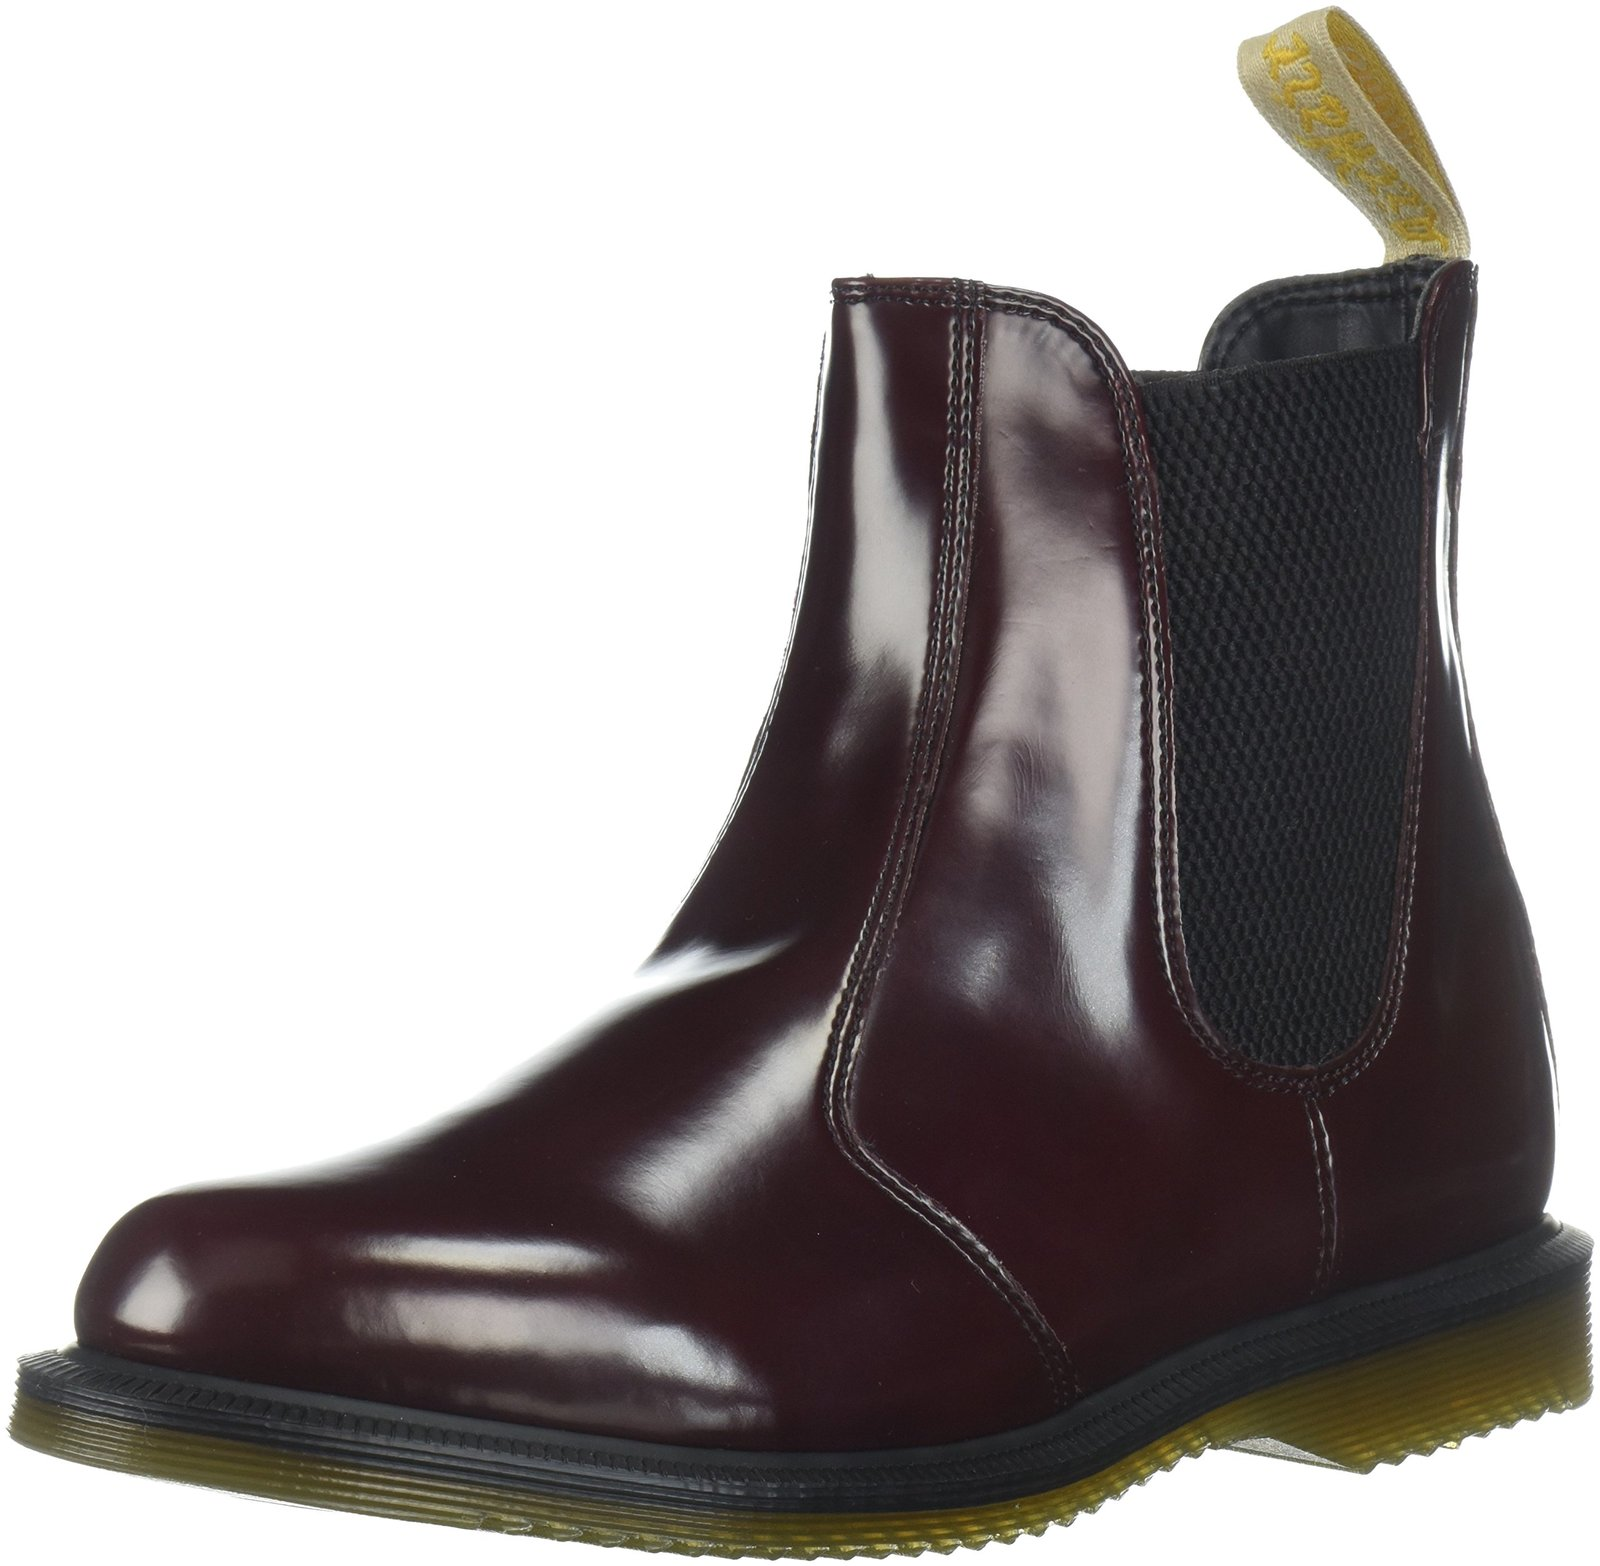 654cc38eb220d 81sdh9filel. 81sdh9filel. Previous. Dr. Martens Women's Vegan Flora Chelsea  Ankle Boot, Cherry Red, 5 Medium UK